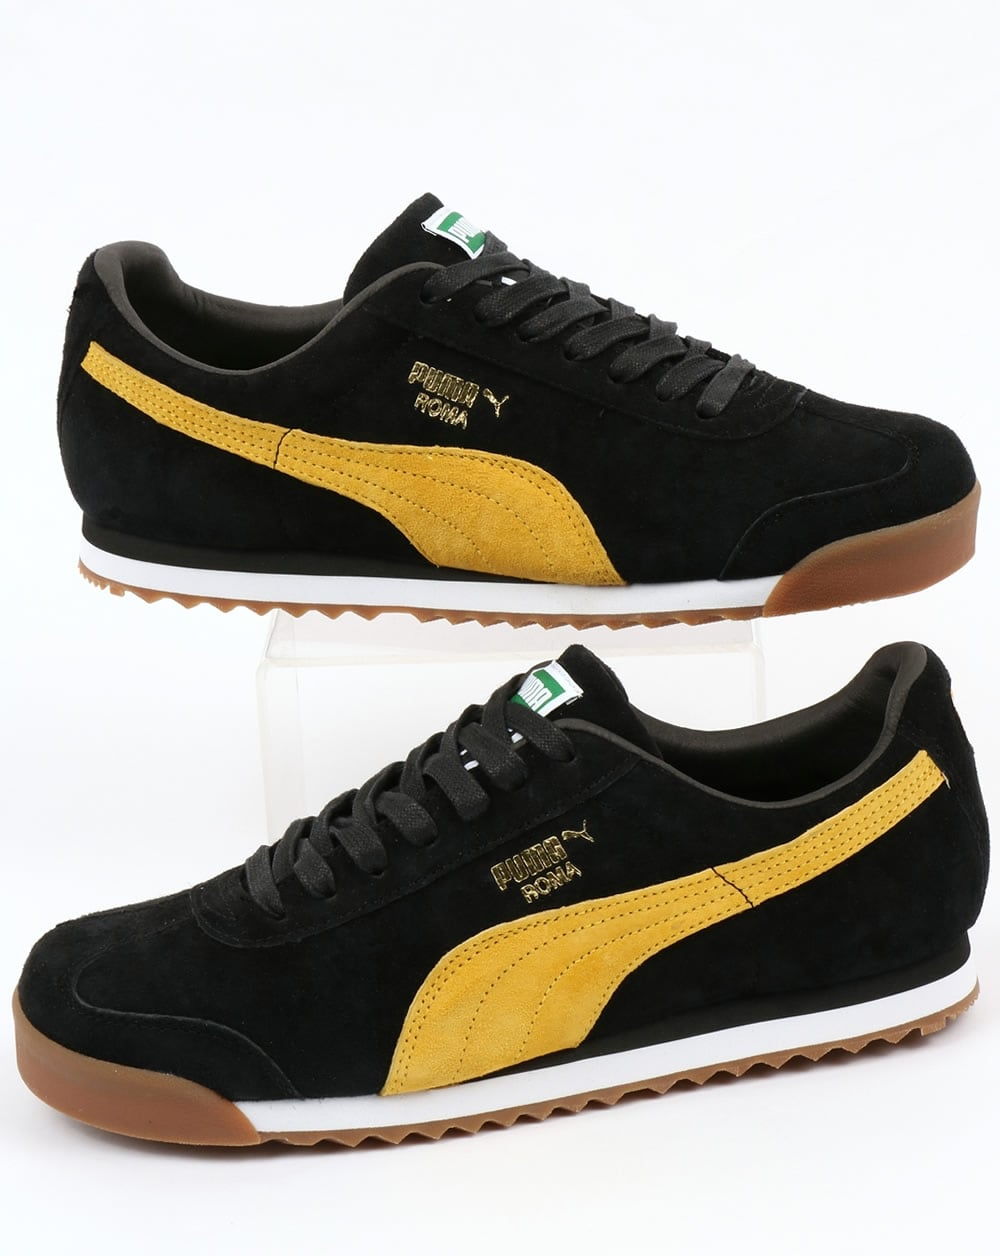 new concept f3ac1 3caae Puma Roma Trainers Black/Yellow